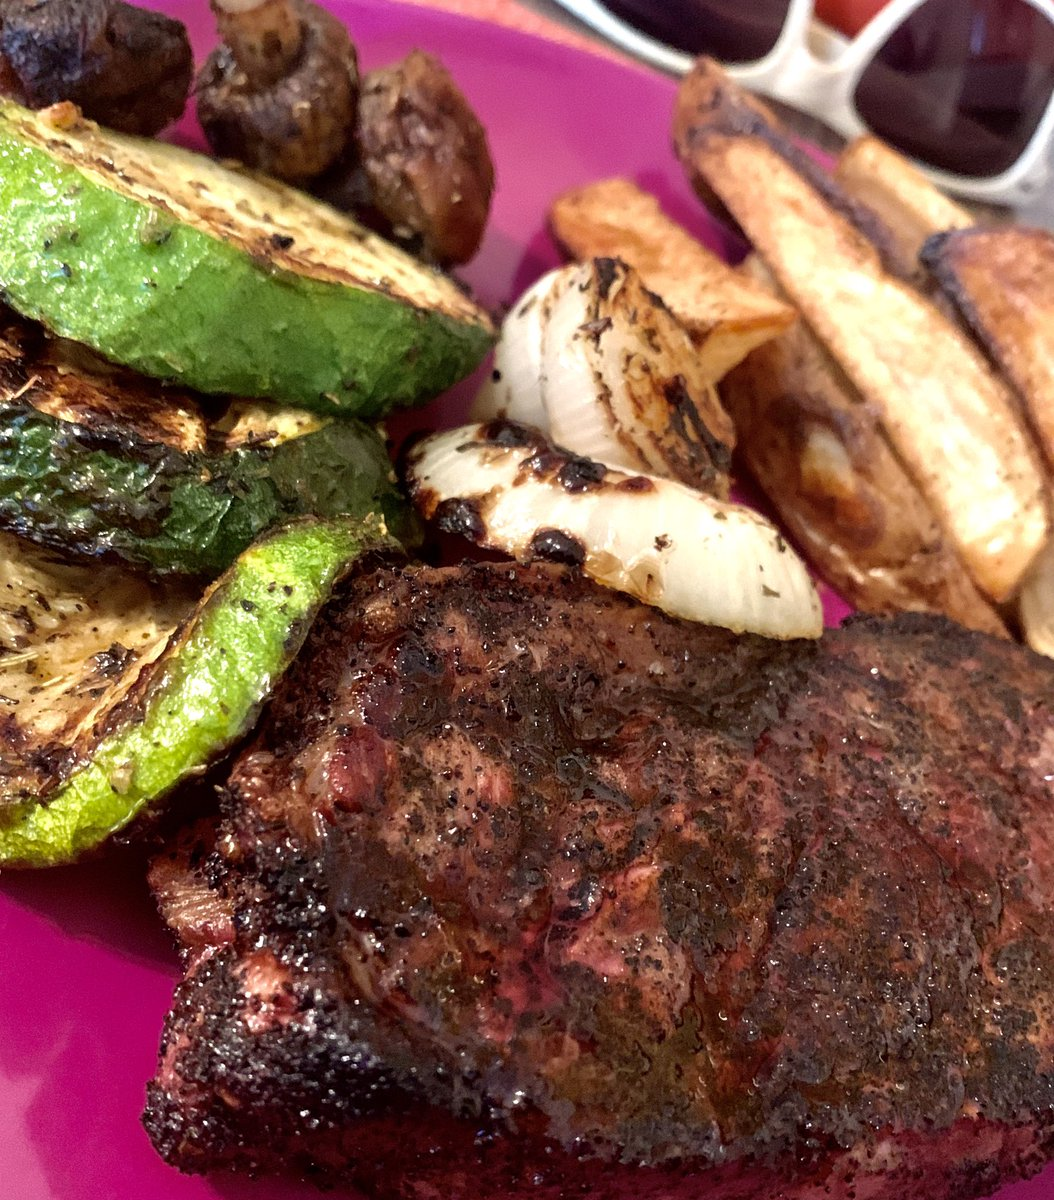 Coffee and garlic rubbed steak with grilled vegetables, oven baked potato wedges, and a blackberry vodka slushy!  #Dinner #July4th #Keto #Blogger #FoodPics #InstaFood #FoodPorn #FeedFeed #Foodie #PhotoOfTheDay #Delish #Healthy #Biologique #Biologico #GlutenFree #Brunch #Recipes